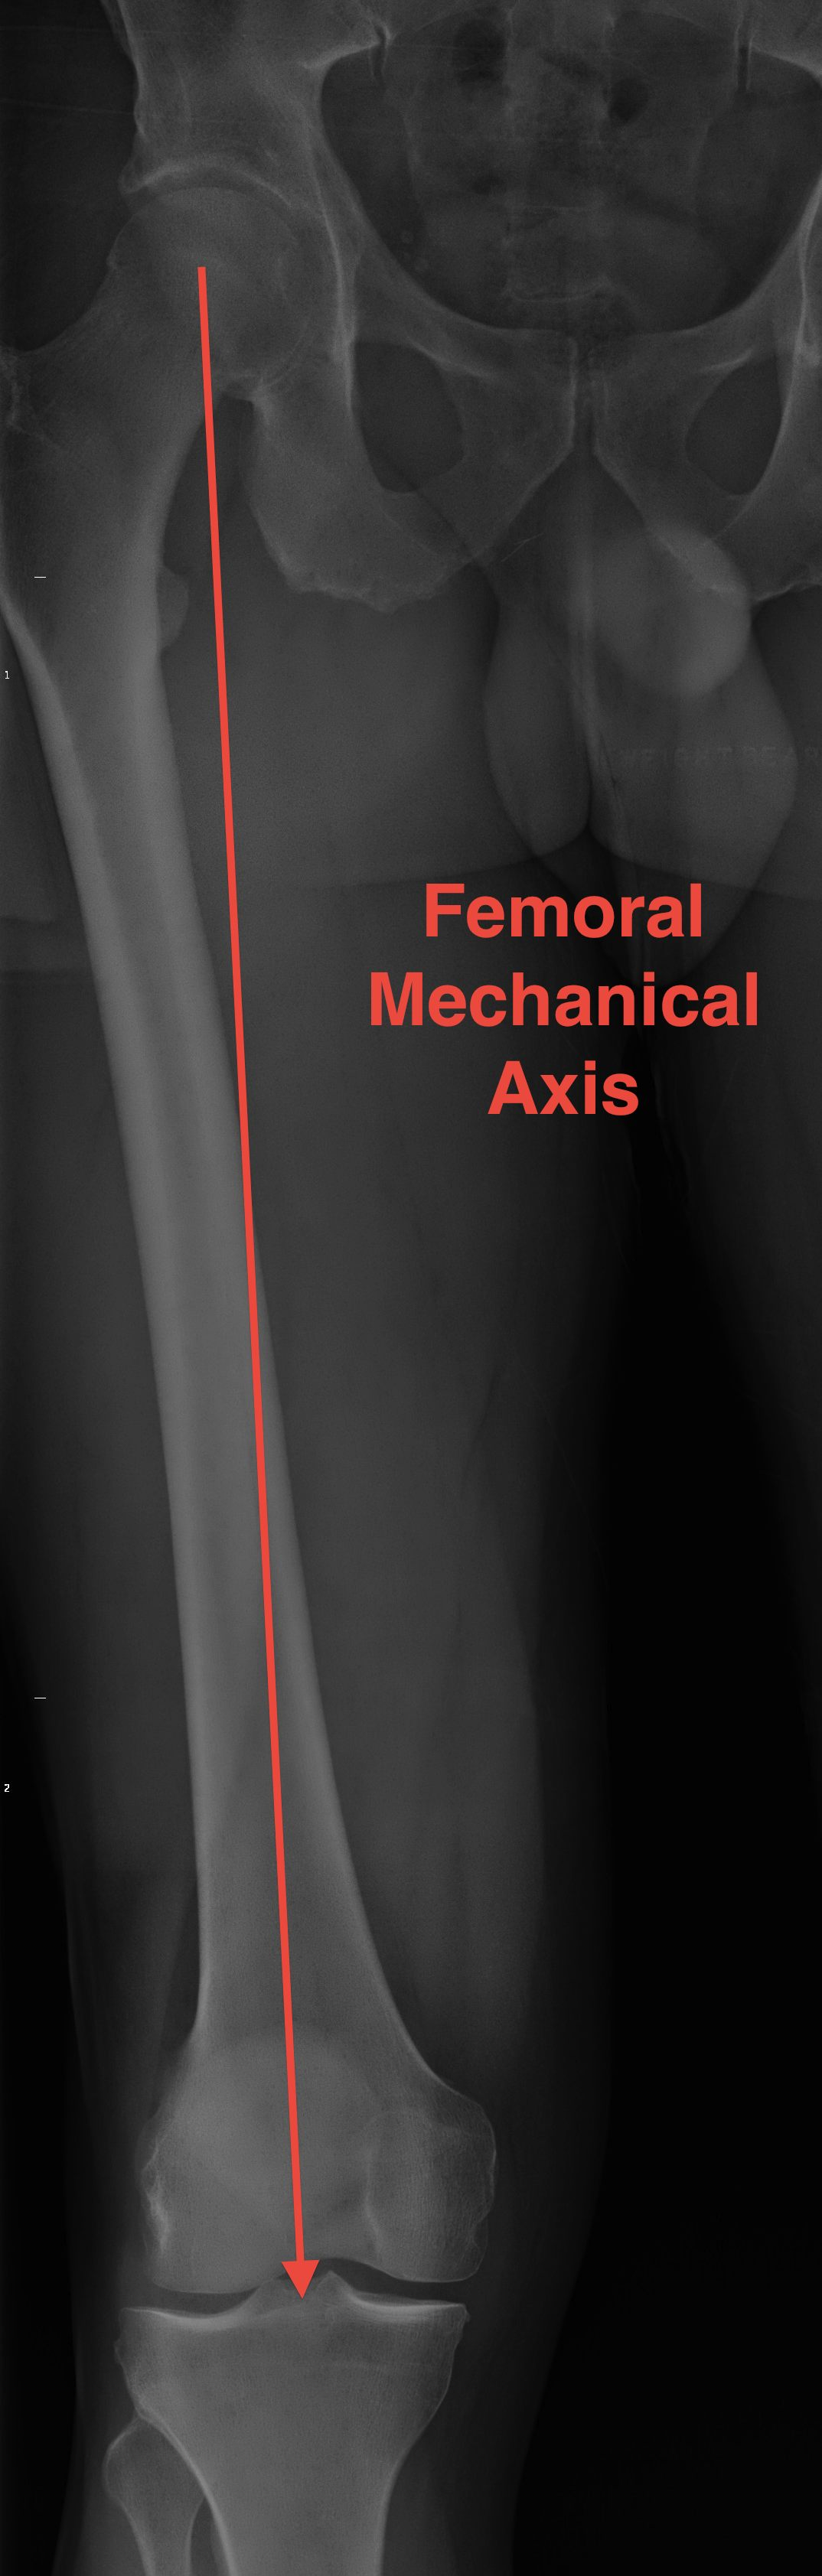 Femoral Mechanical Axis